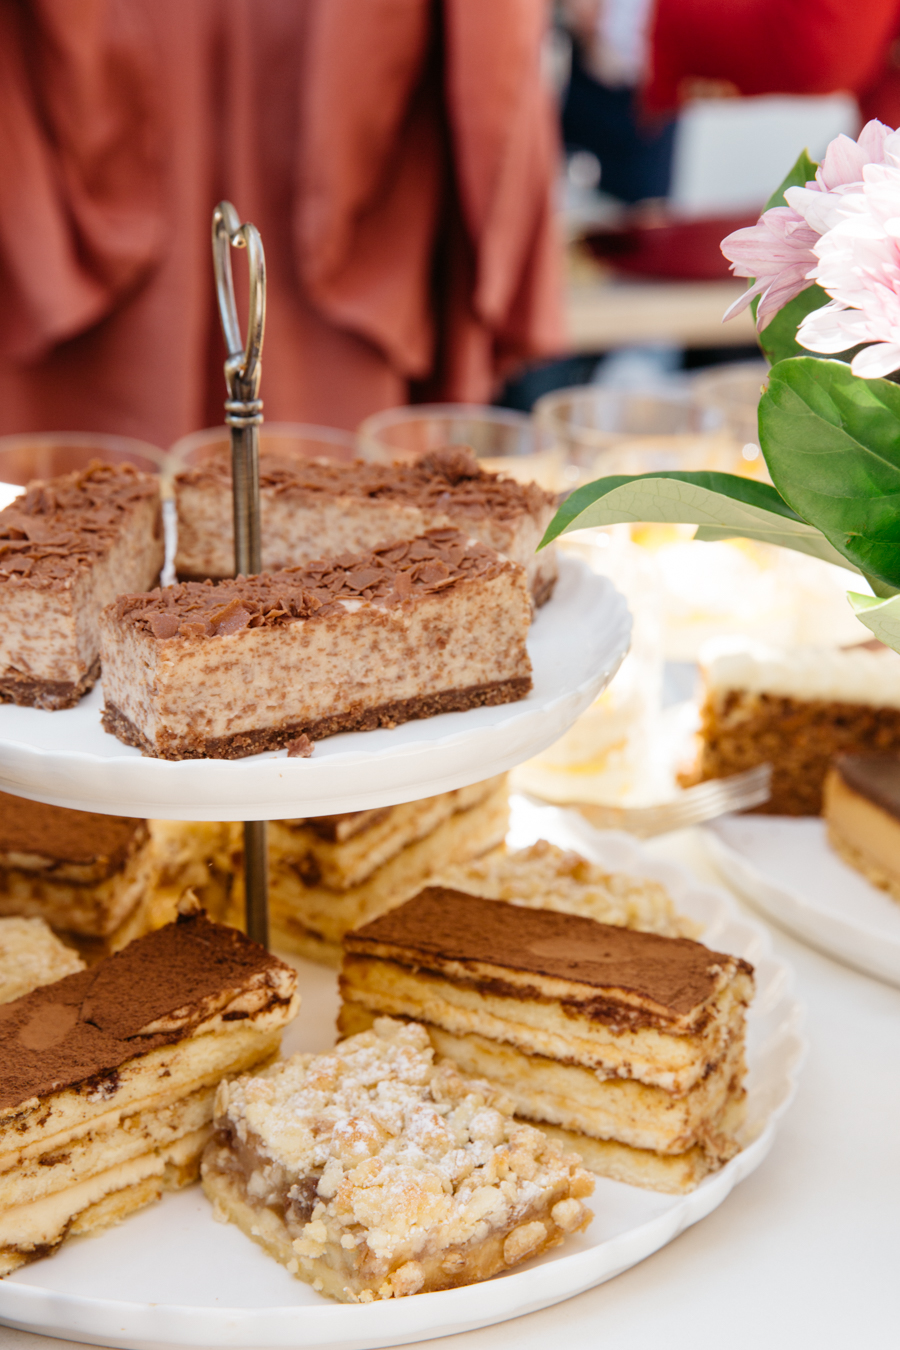 Assortment of Coffee Club cakes & desserts at Floreat Forum.